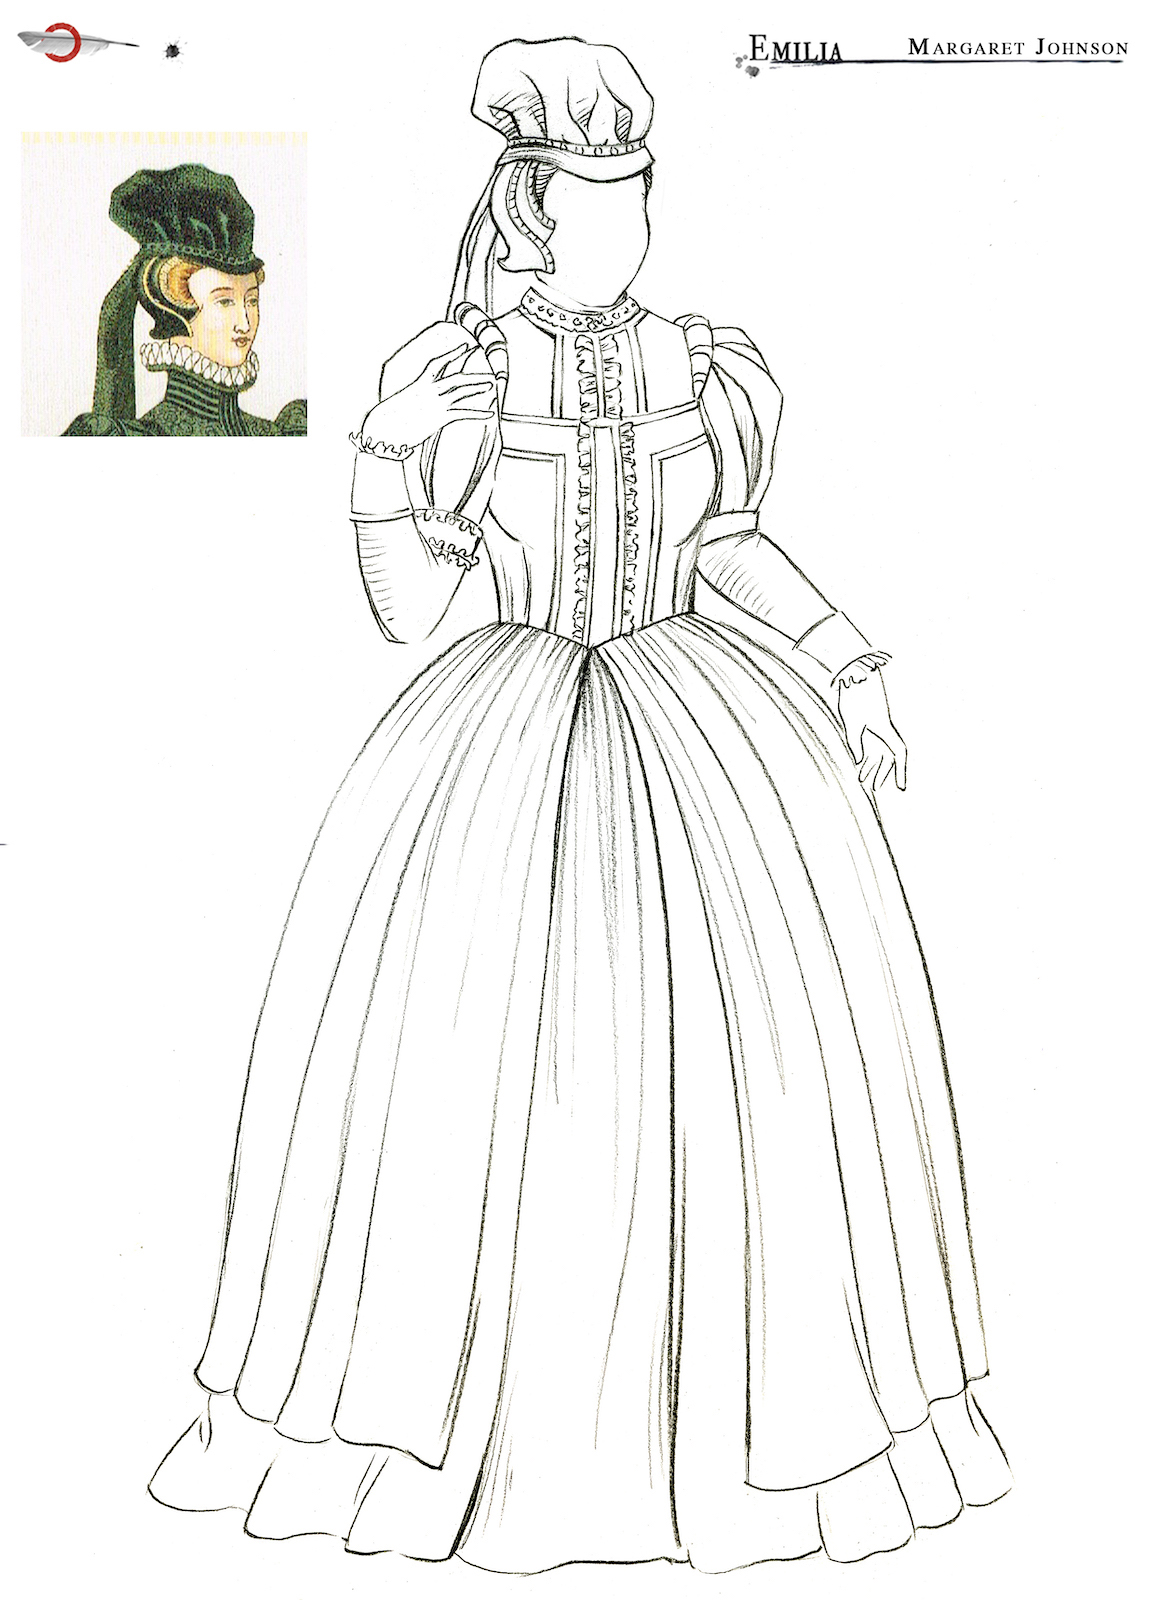 An outline sketch of an Elizabethan dress and headwear